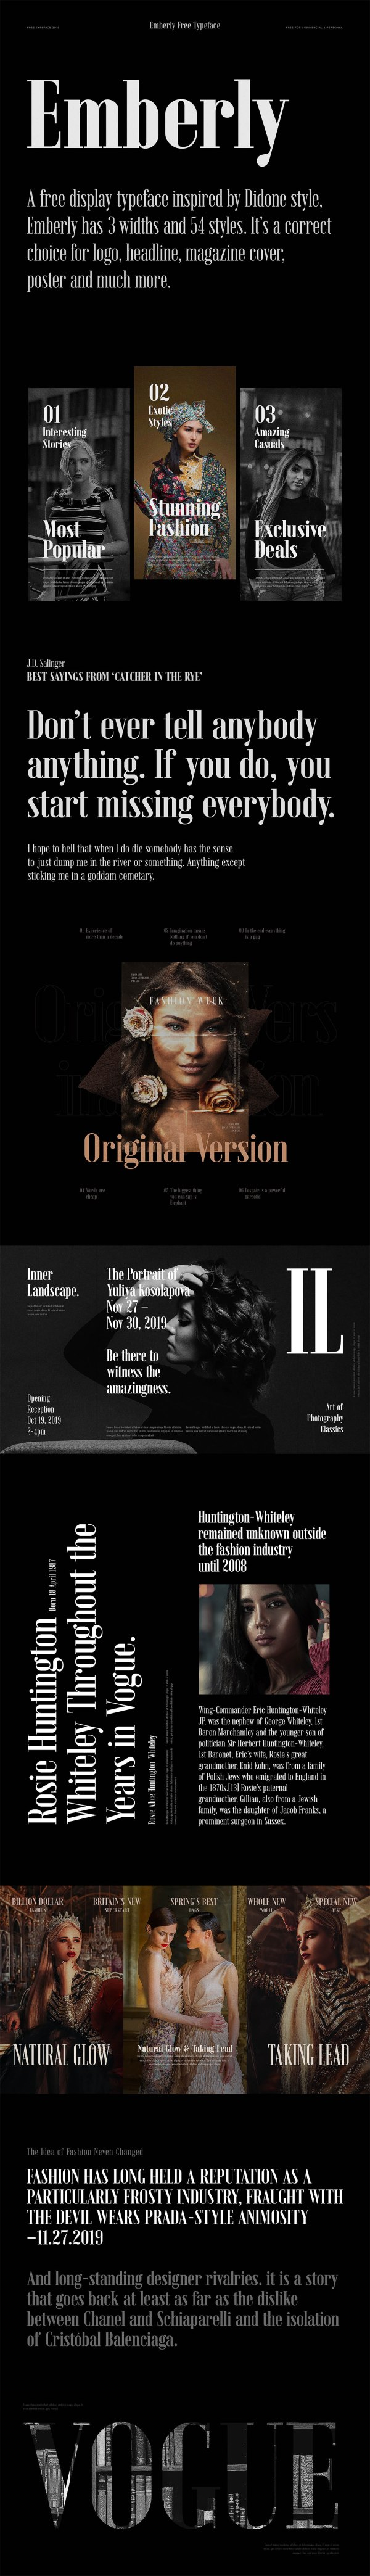 Emberly - Free Typeface in 54 Styles